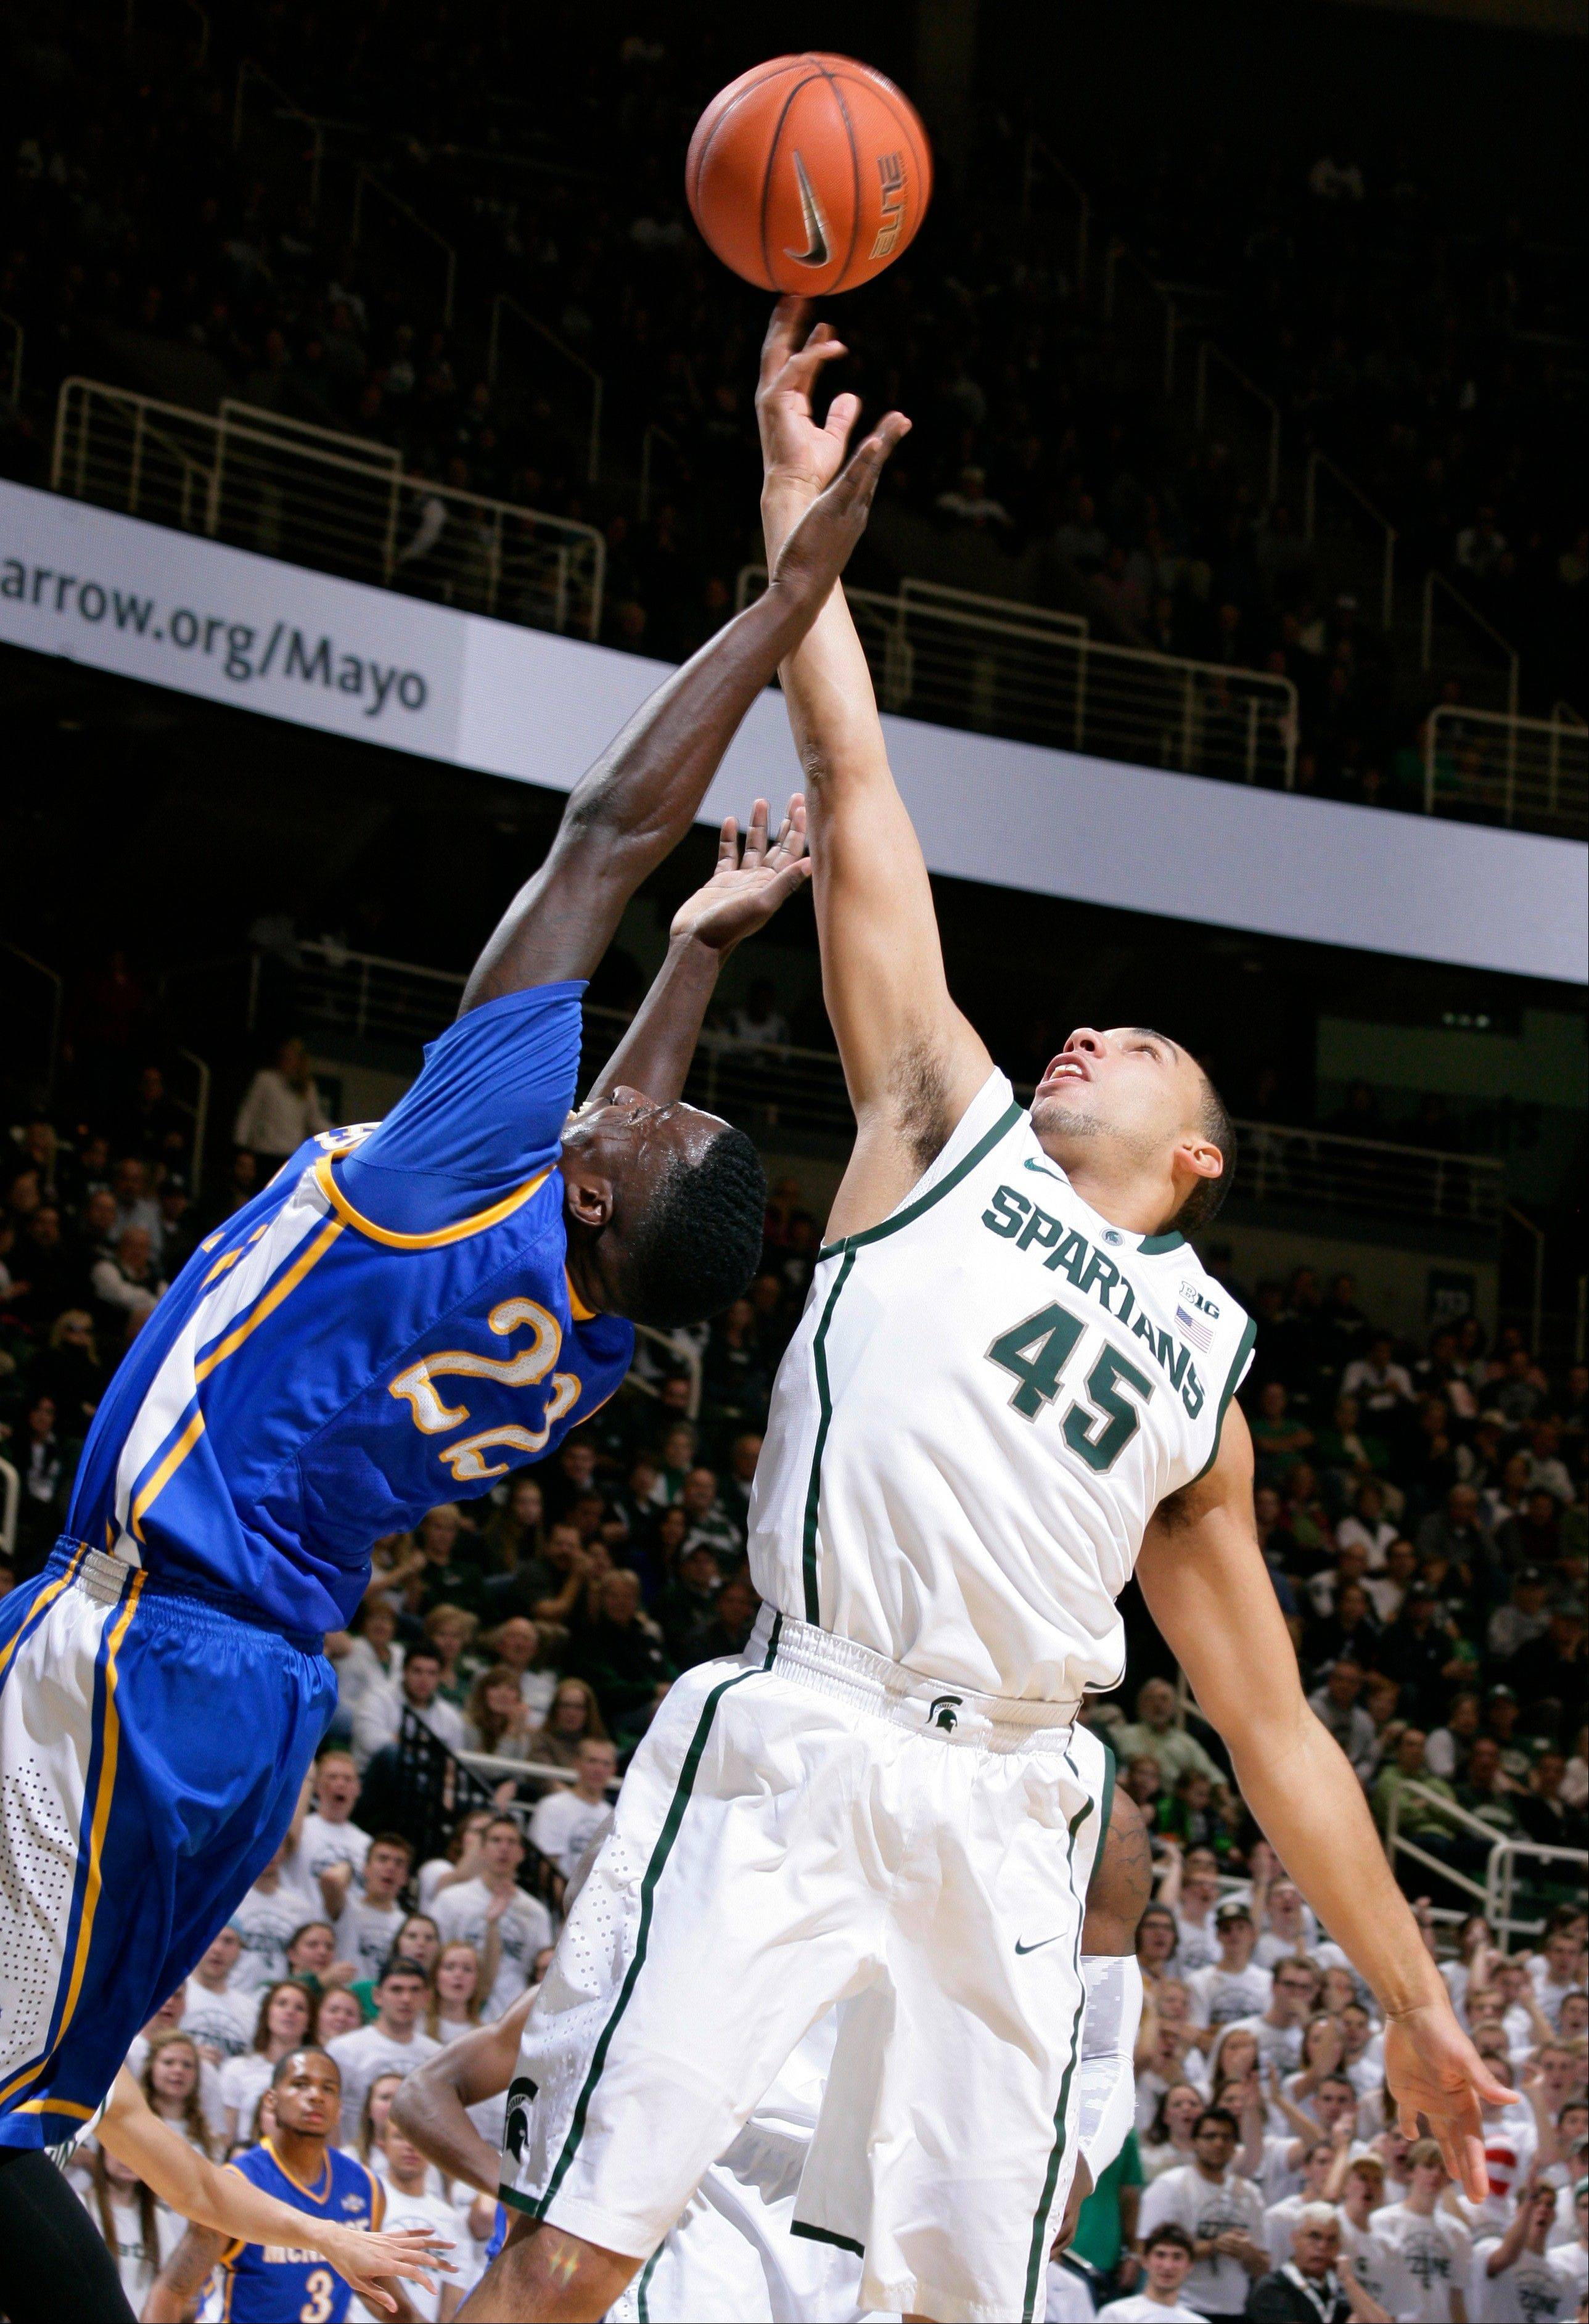 Michigan State's Denzel Valentine and McNeese State's Ledrick Eackles (reach for a rebound during the first half of Friday's game, in East Lansing, Mich. The No. 2 Spartans play top-ranked Kentucky on Tuesday.